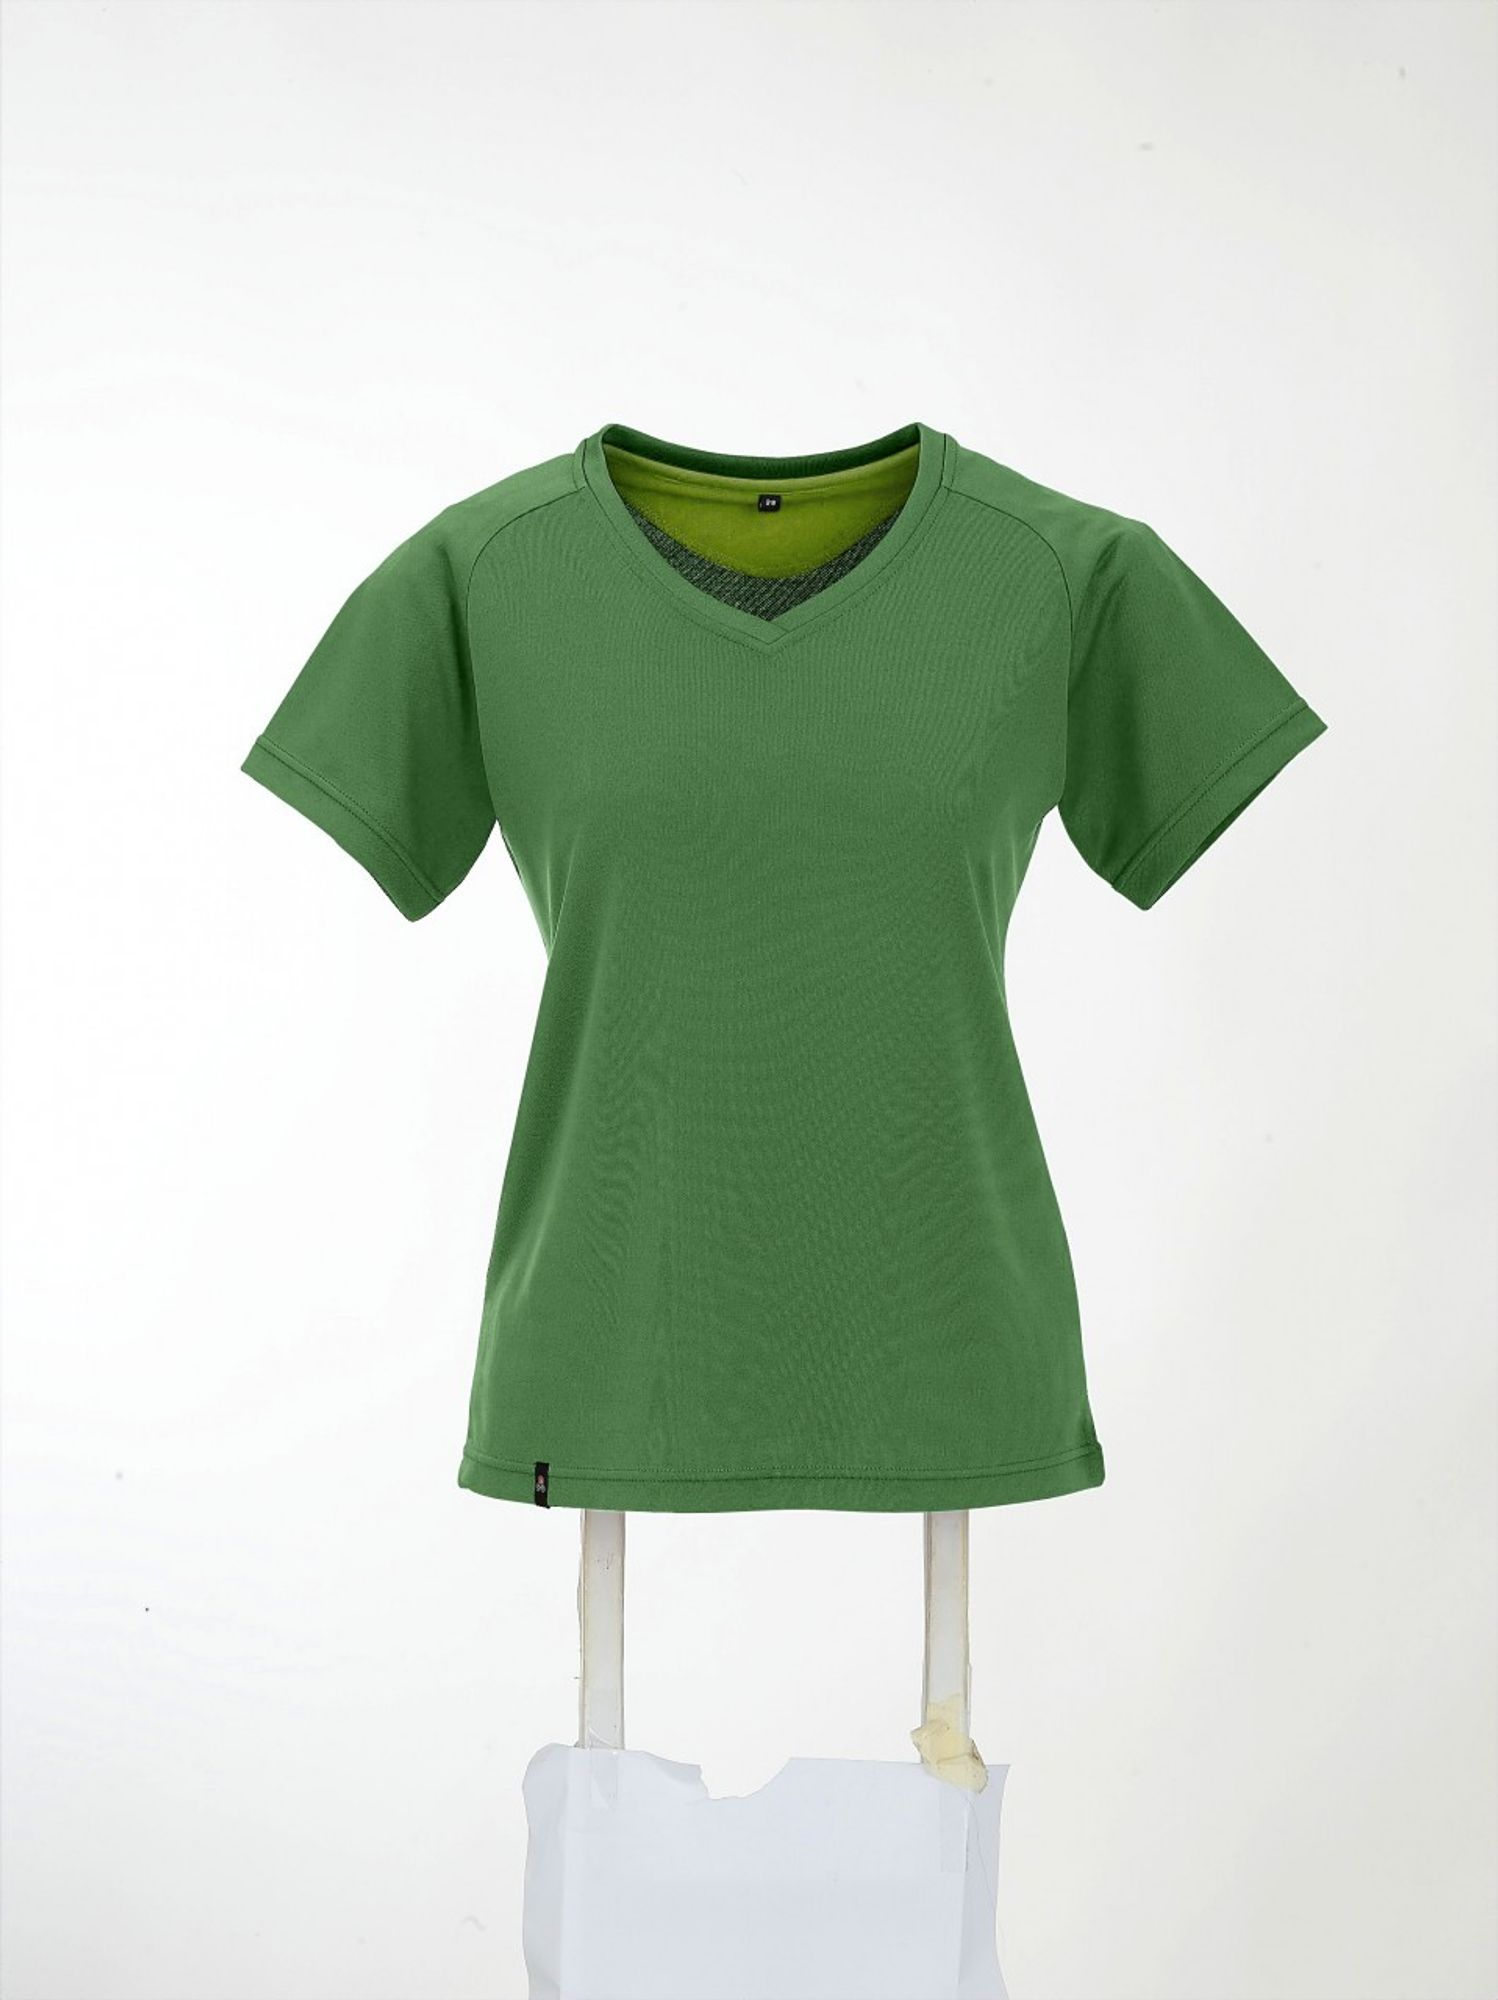 Maul Soinwand Funktions-T-Shirt - pine green